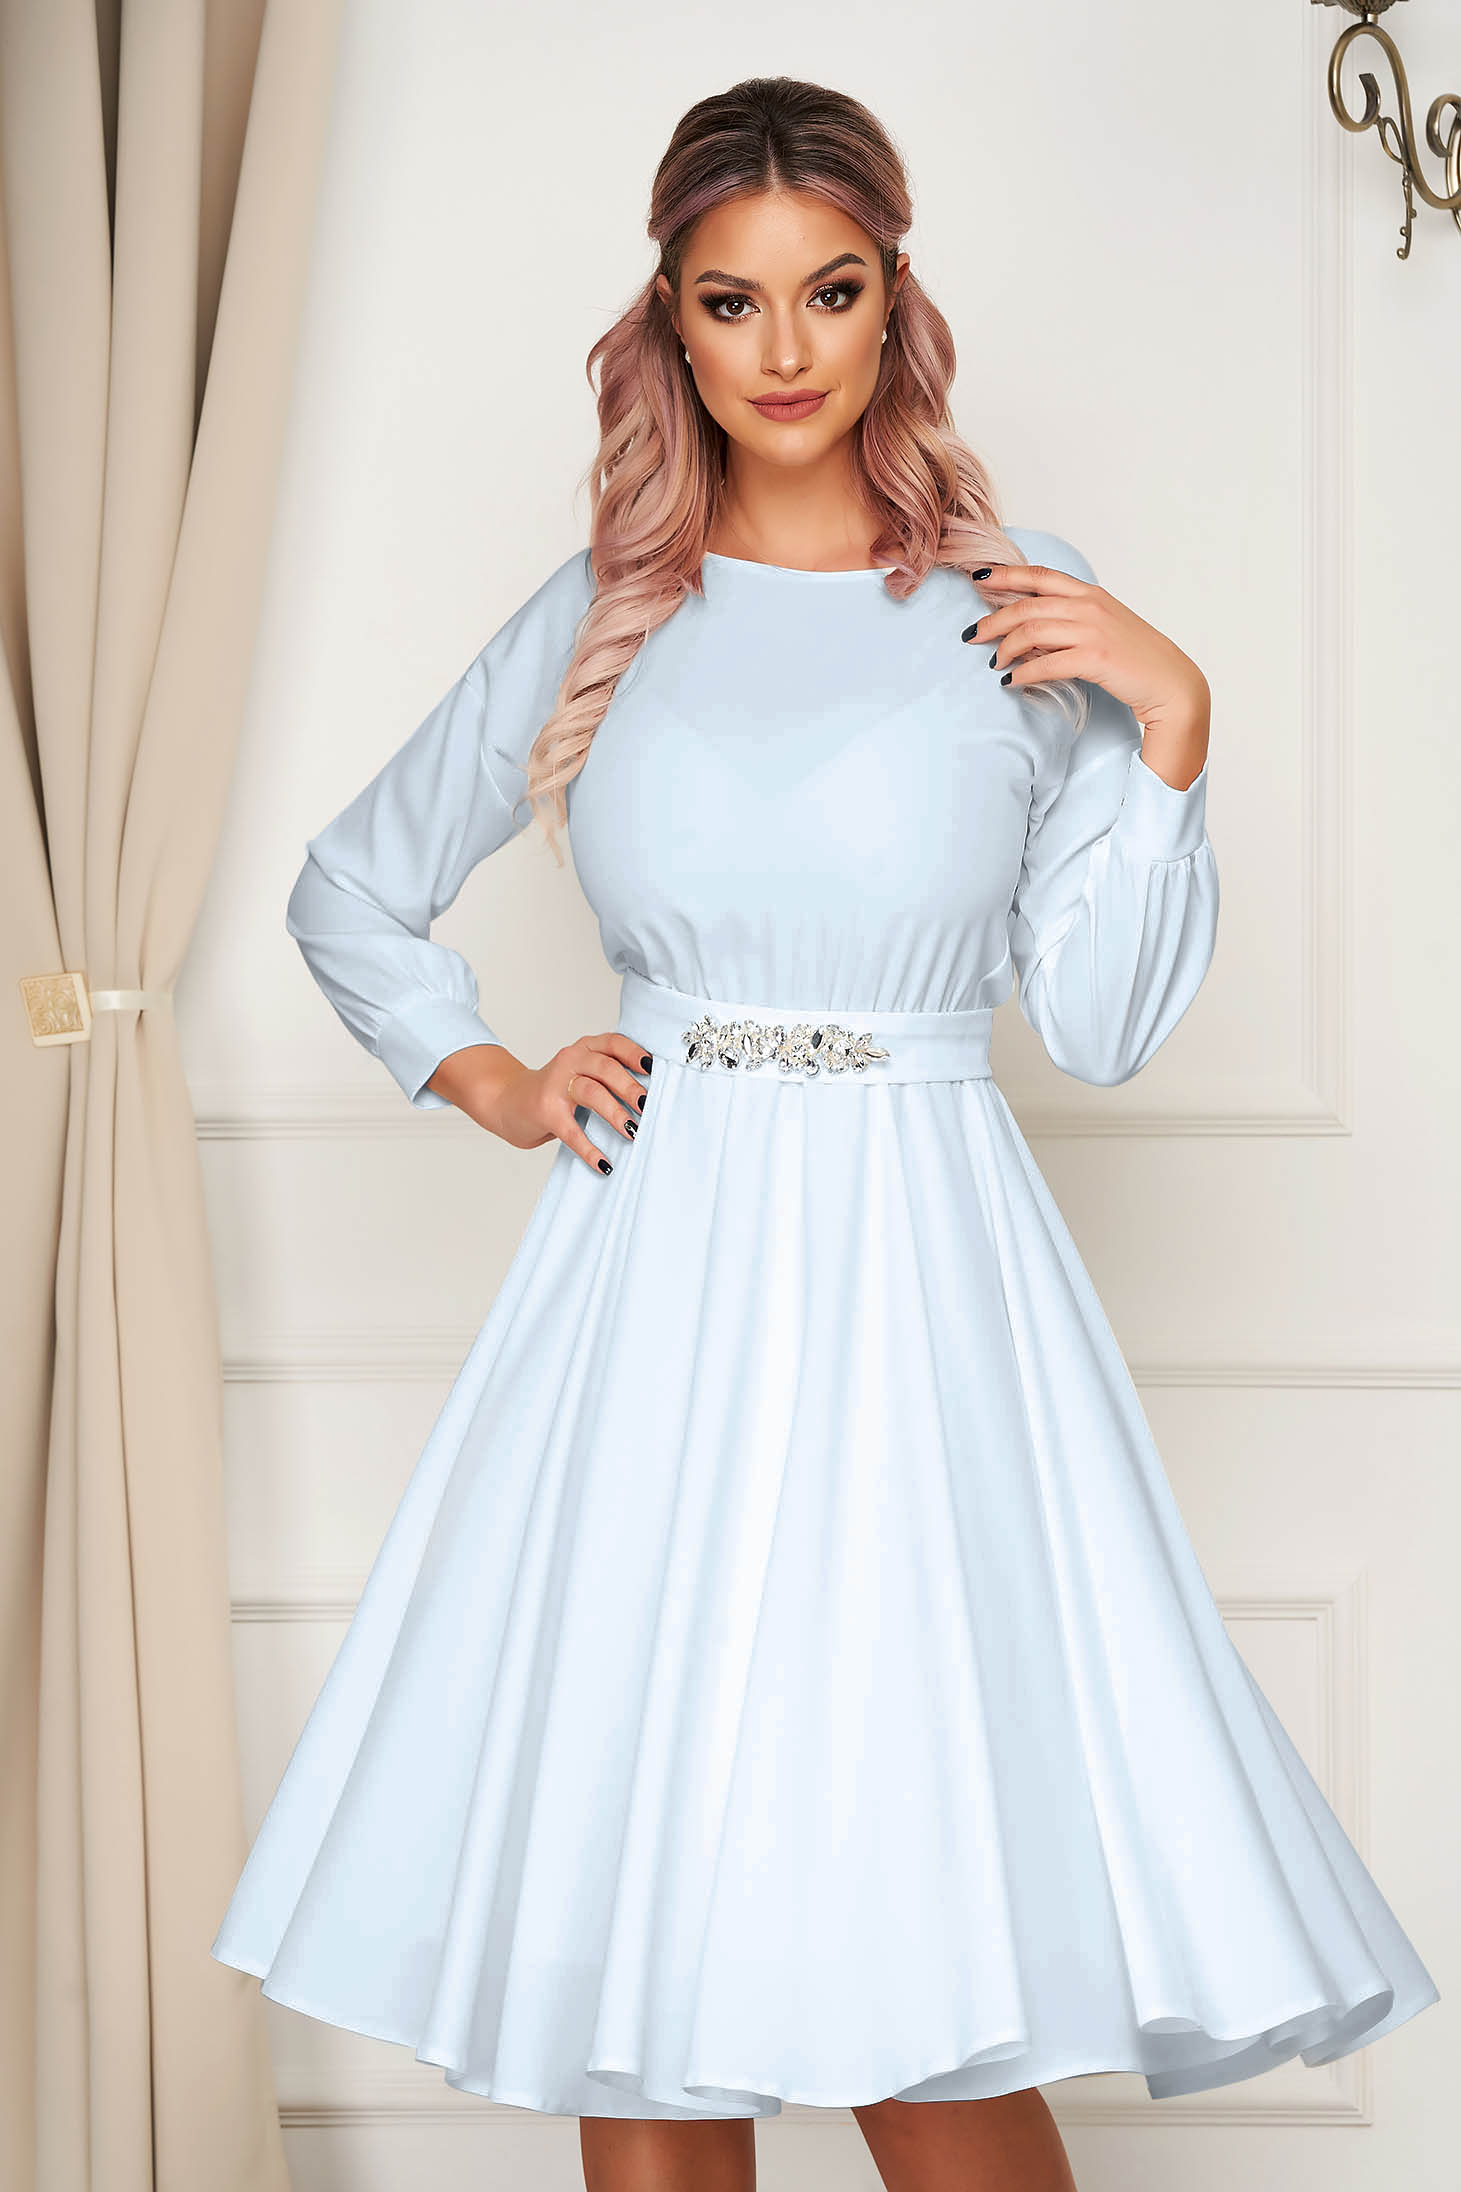 Dress StarShinerS lightblue occasional cloche with elastic waist accessorized with tied waistband with embellished accessories